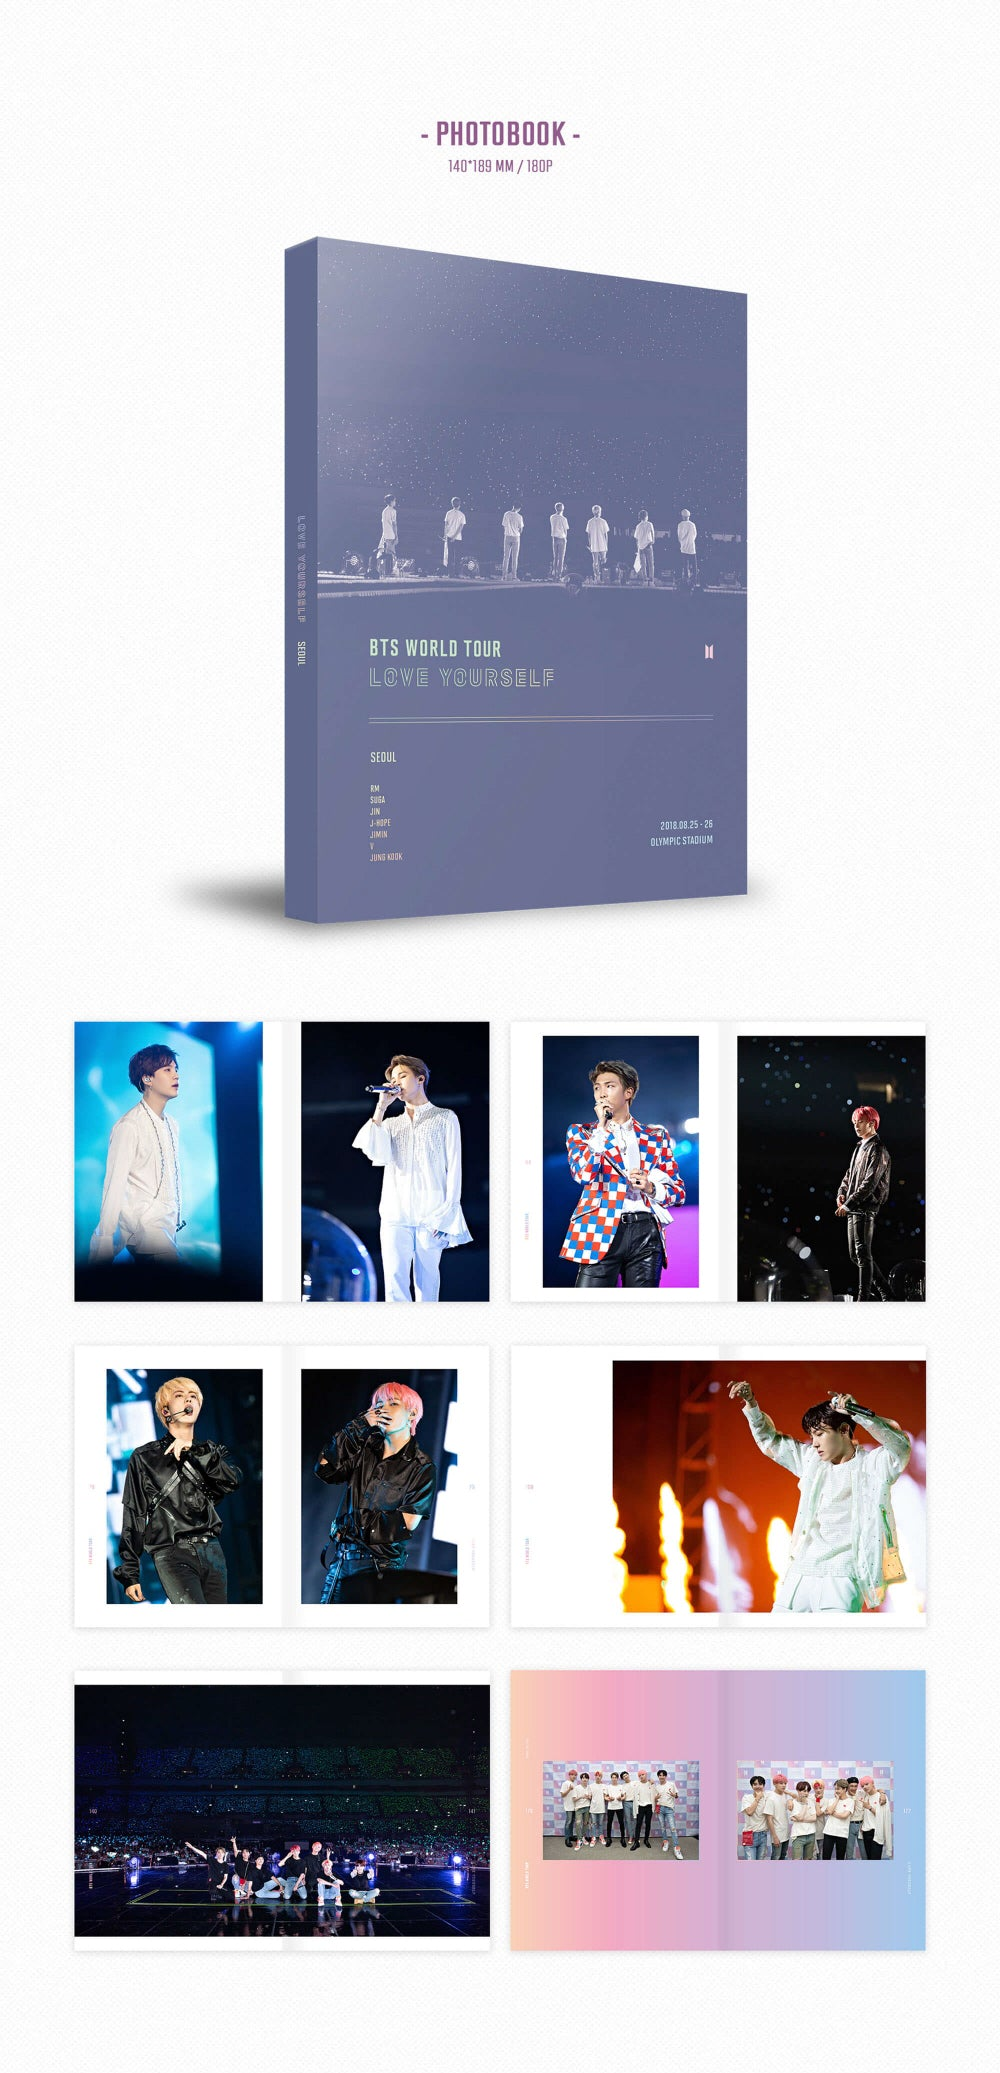 BTS - Love Yourself : Seoul - 3 DVDs - Pre-Order